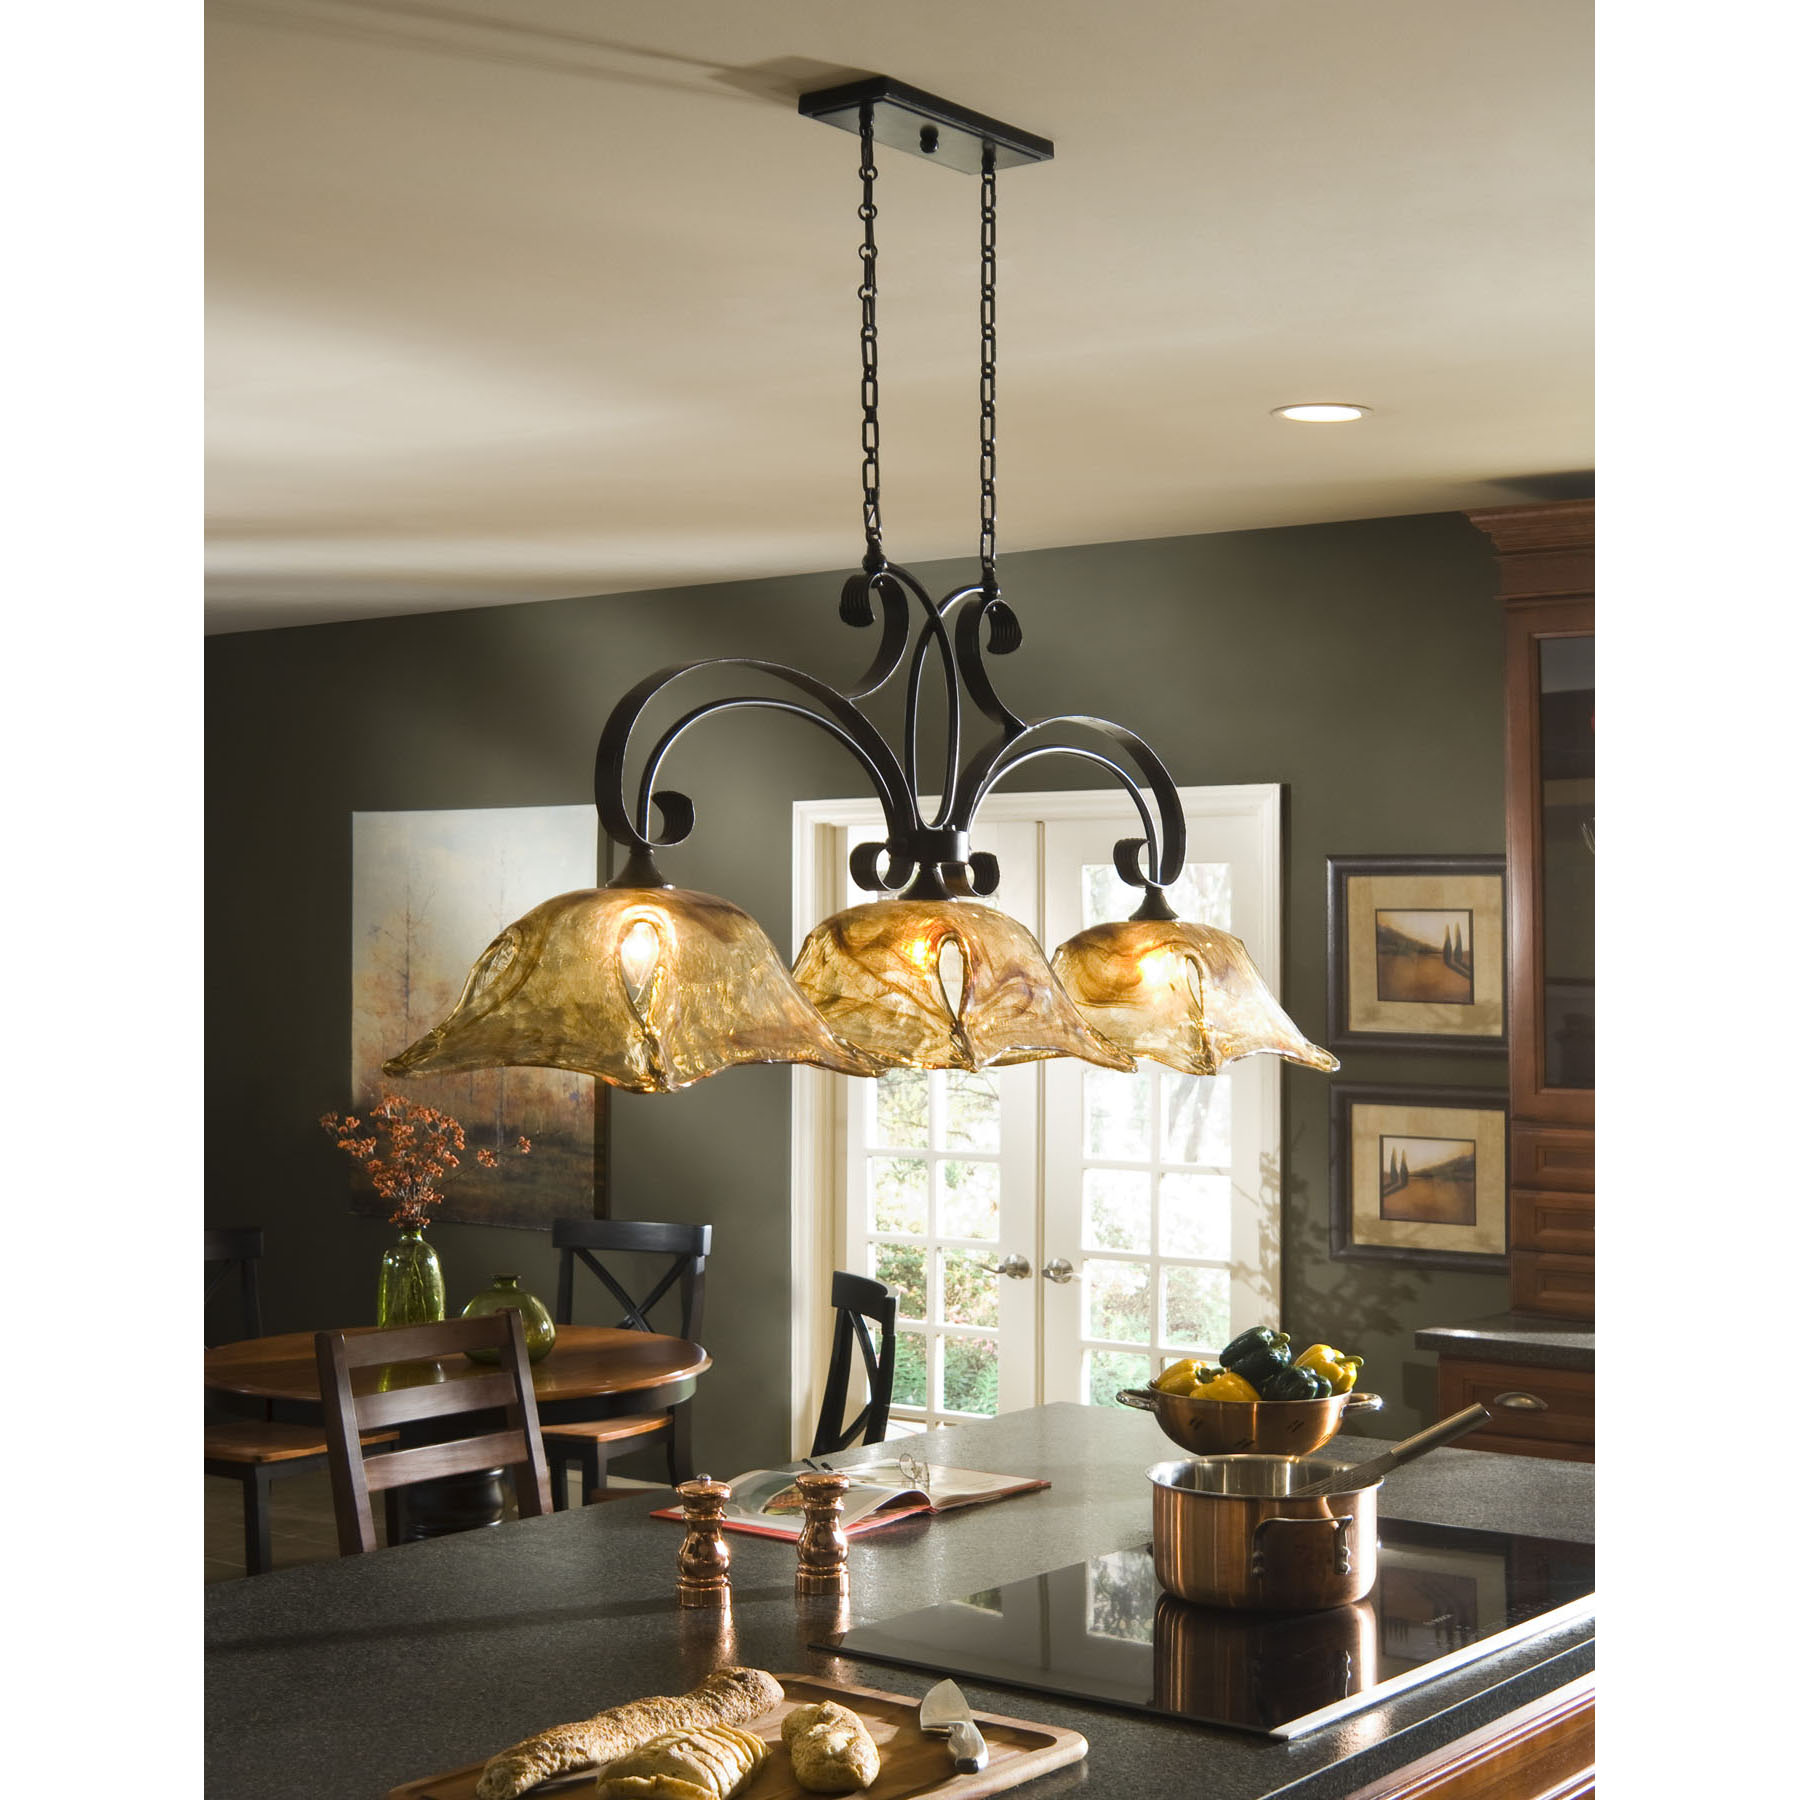 Lighting For The Kitchen: A Tip Sheet On How The Right Lighting Can Make The Kitchen